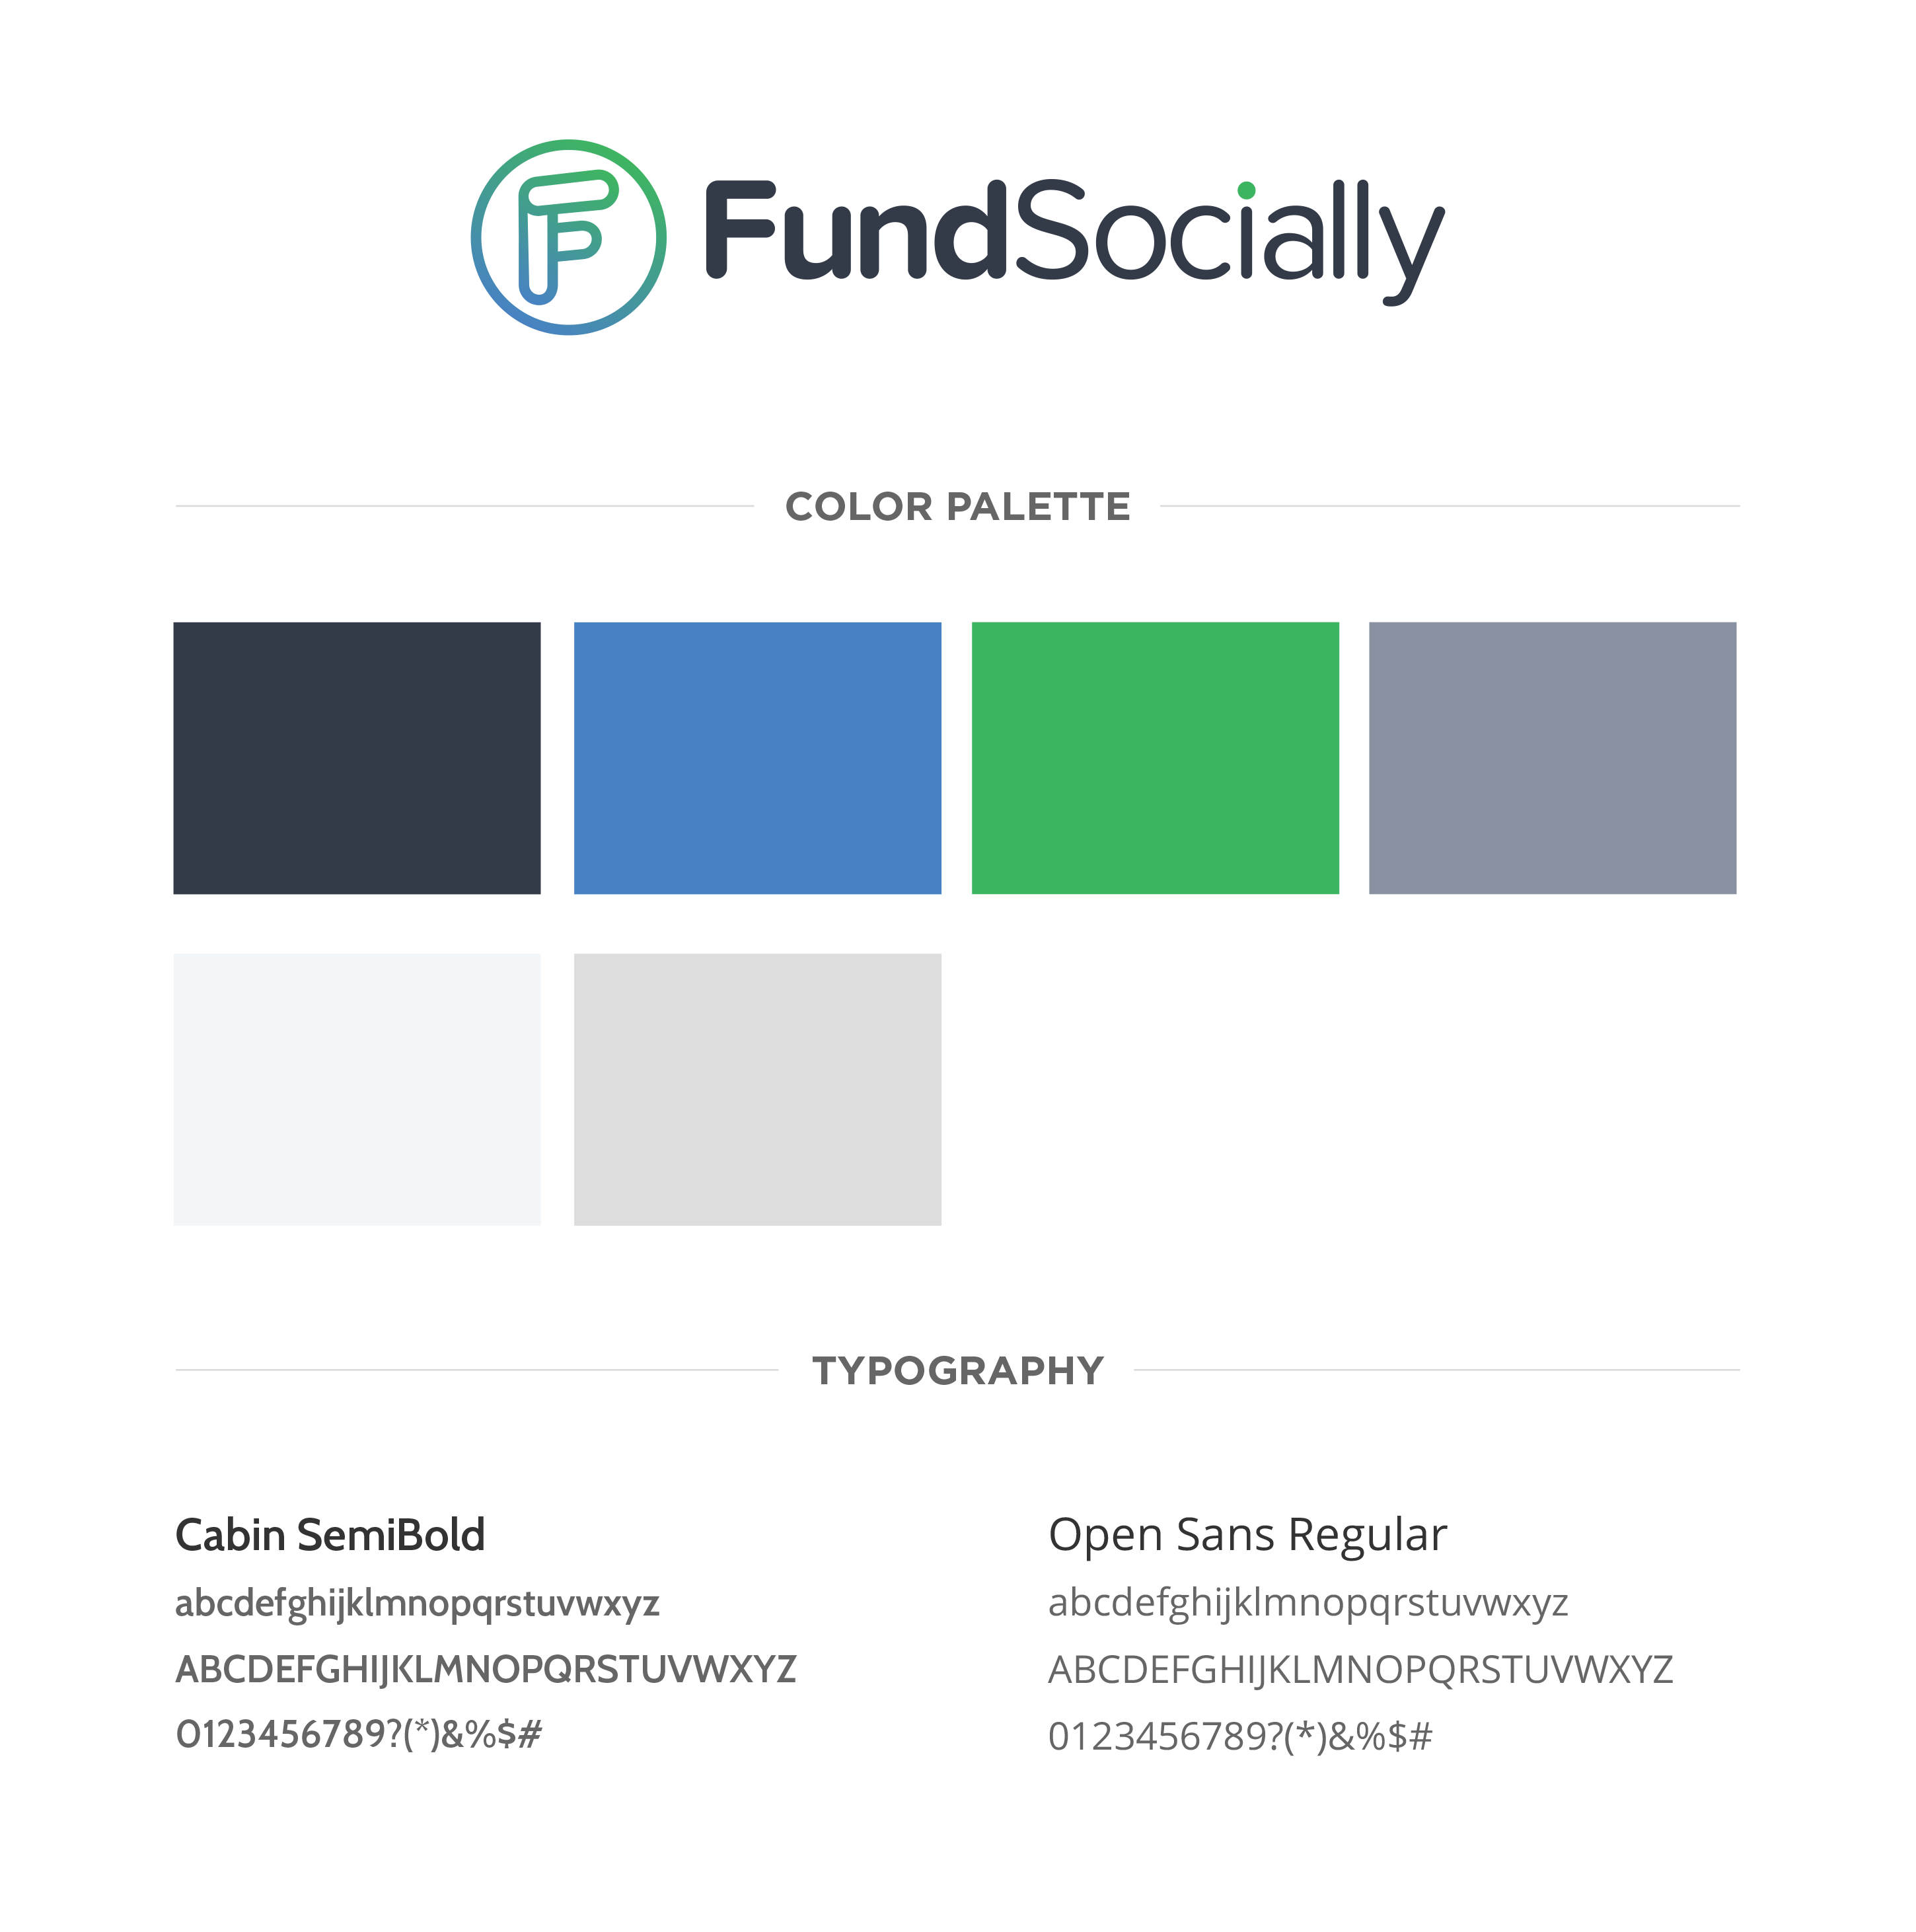 FundSocially style guide